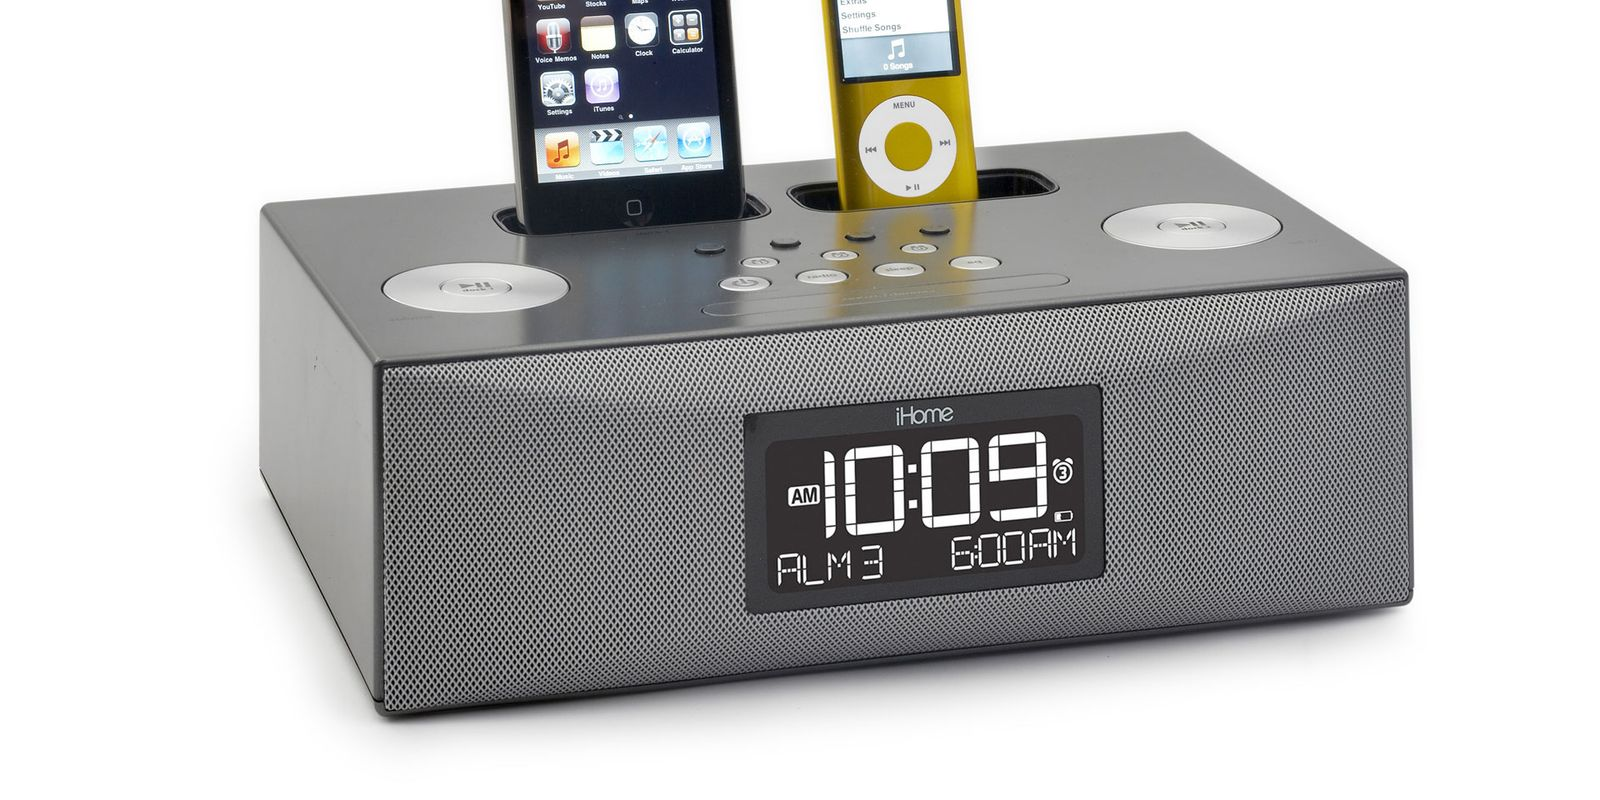 Ihome alarm clock radio : Amc no passes